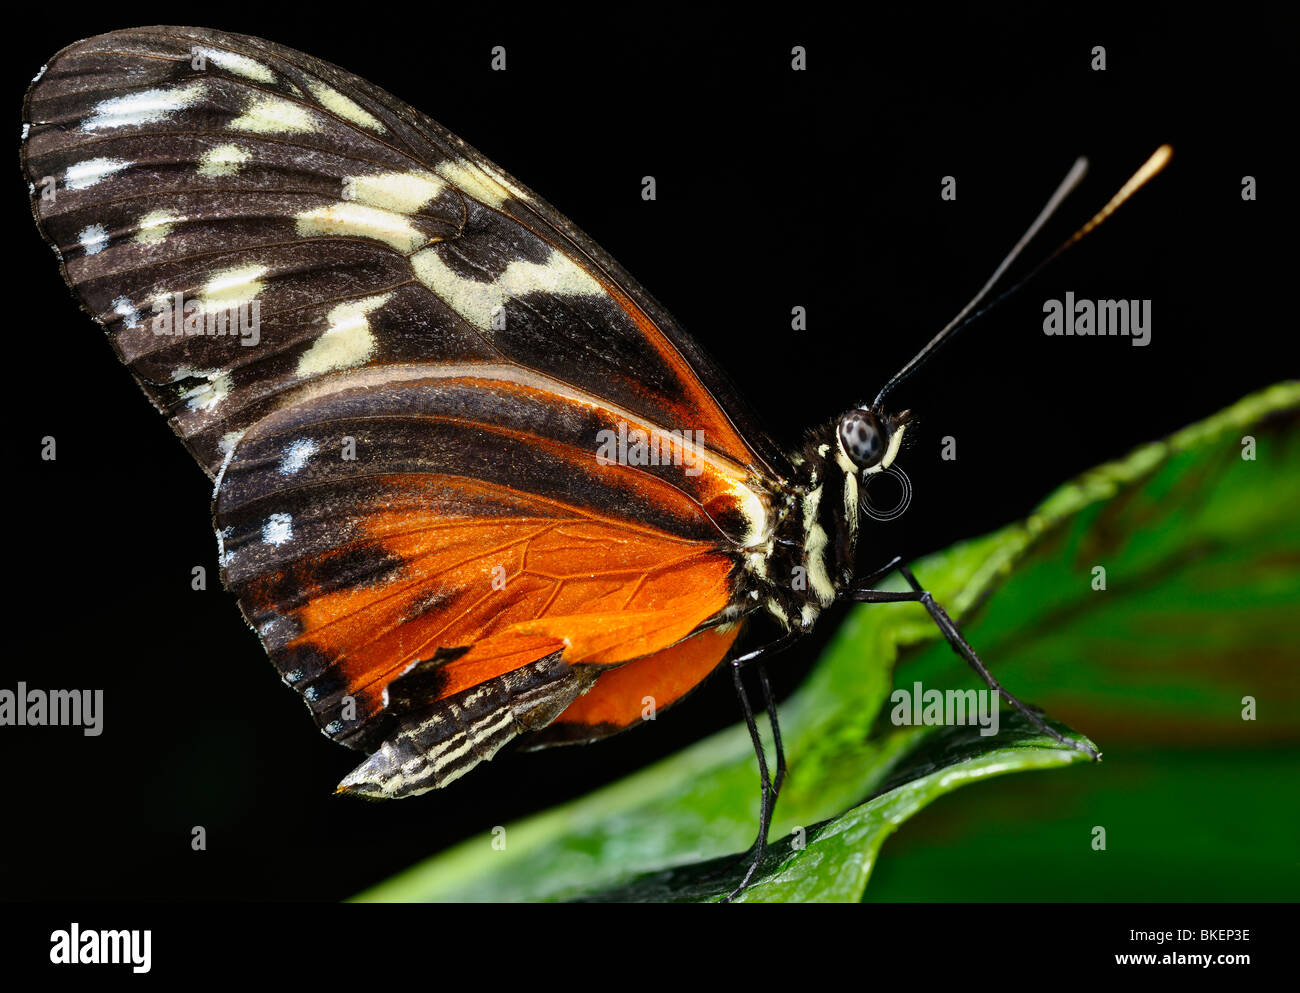 Wing texture of Eueides Isabella longwing butterfly on a leaf against black background - Stock Image